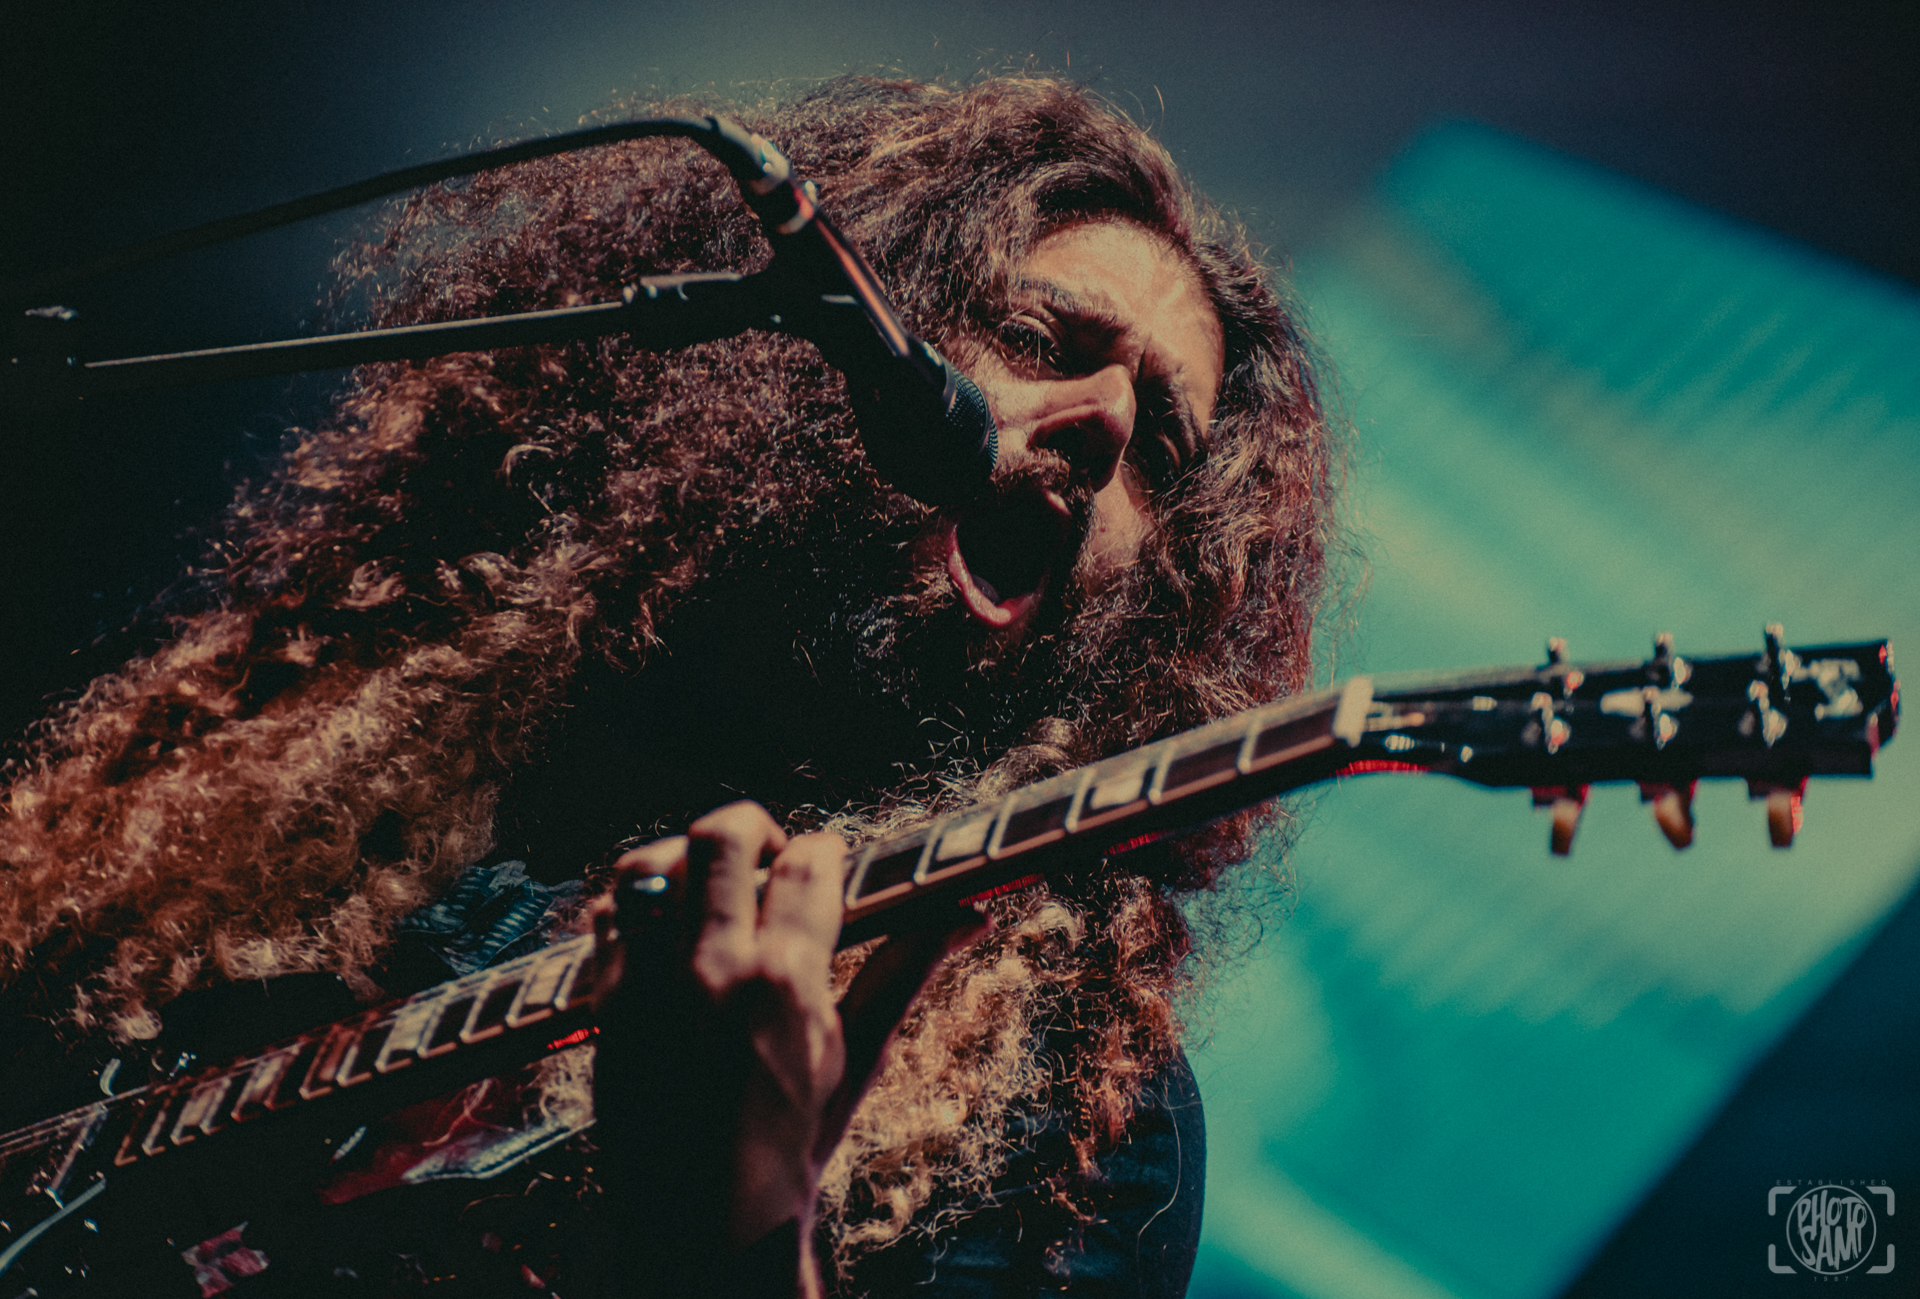 Coheed and Cambria headline the lively Unheavenly Skye Tour